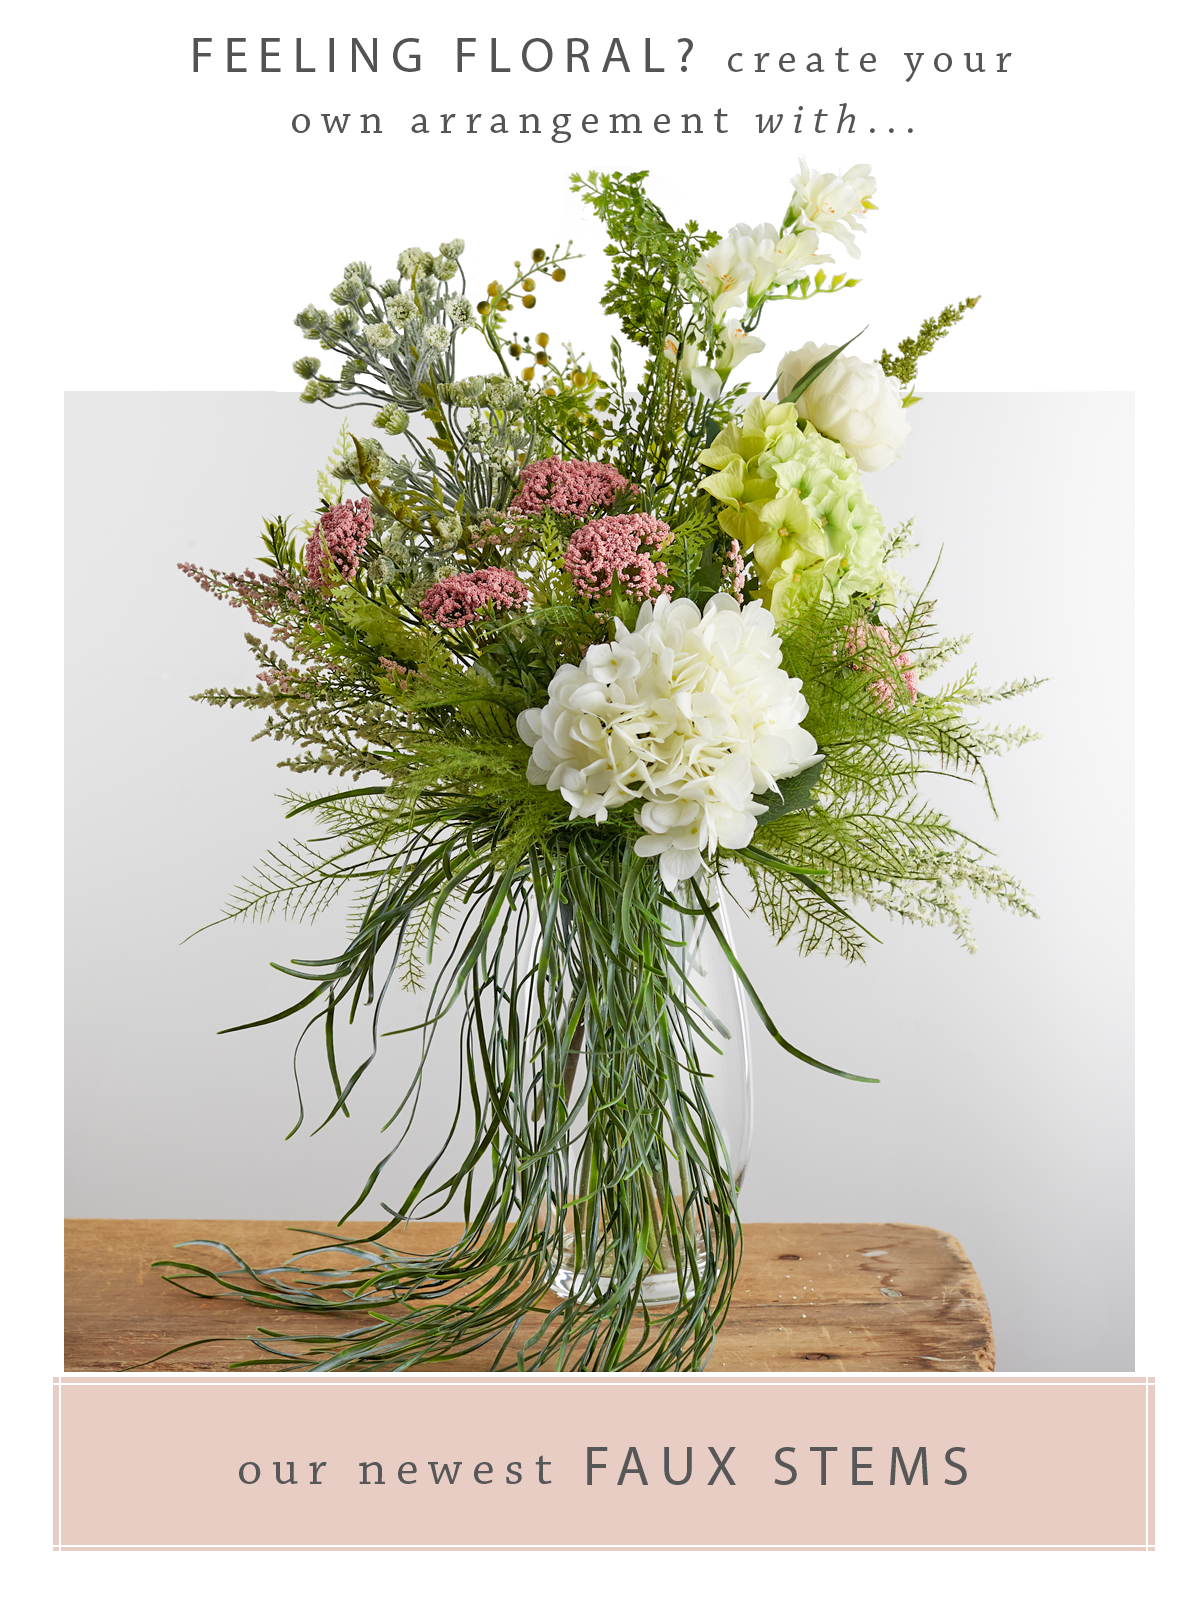 Feeling floral? create your own arrangement with...  Our Newest Faux Stems